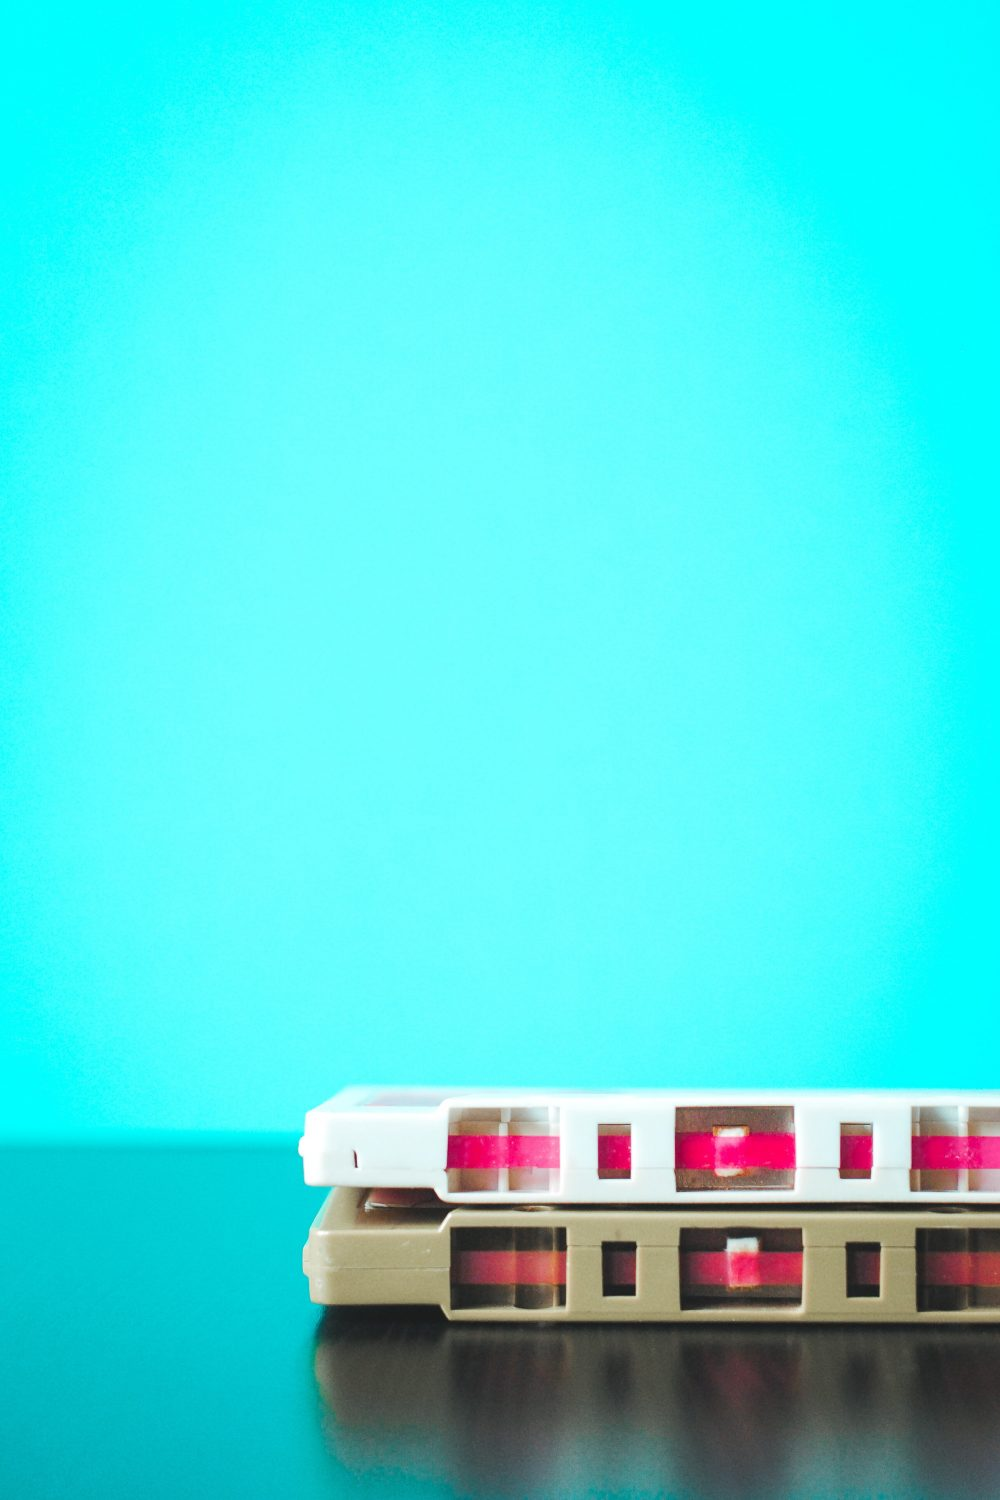 Old retro tapes on a blue background